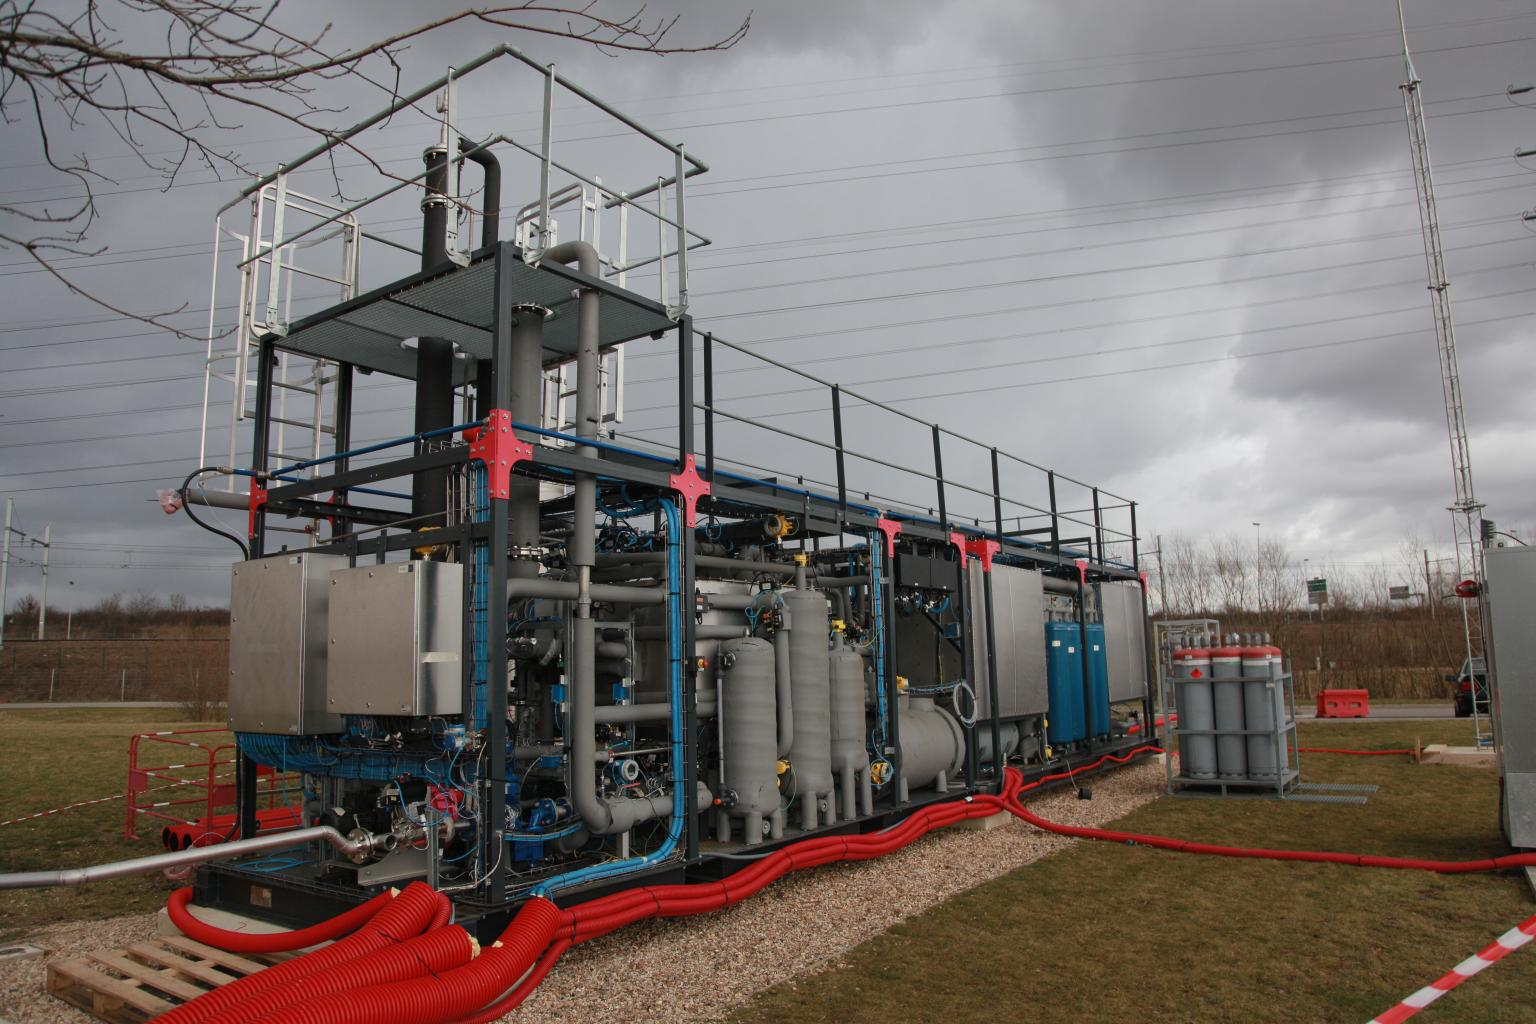 In 2015, an industrial demonstrator was installed at the Valenton water treatment plant